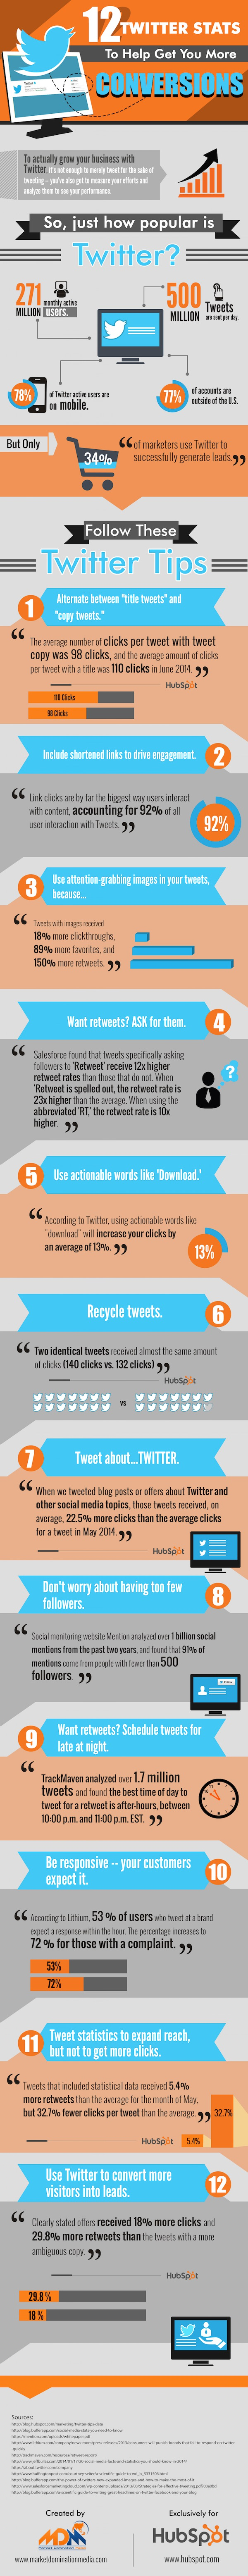 Get More Conversions Using These 12 Twitter Stats [Infographic]